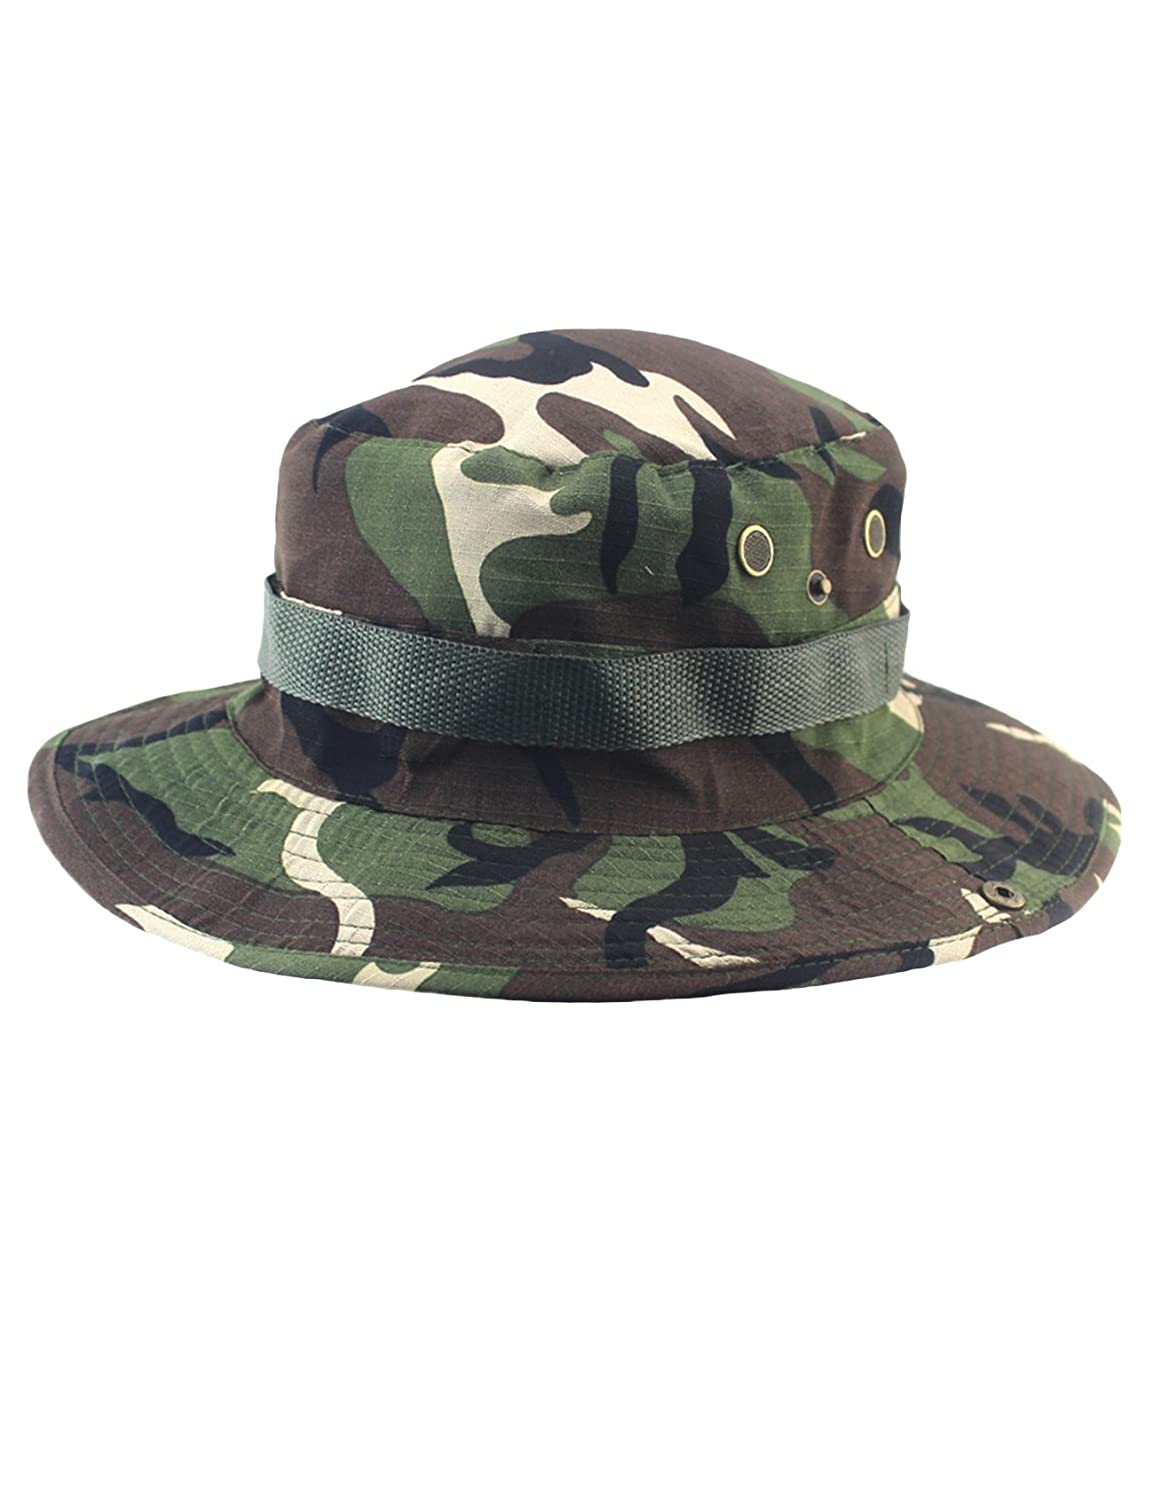 newrong Men's Outdoor Camouflage Sun Hat XZMYWJ0304-12